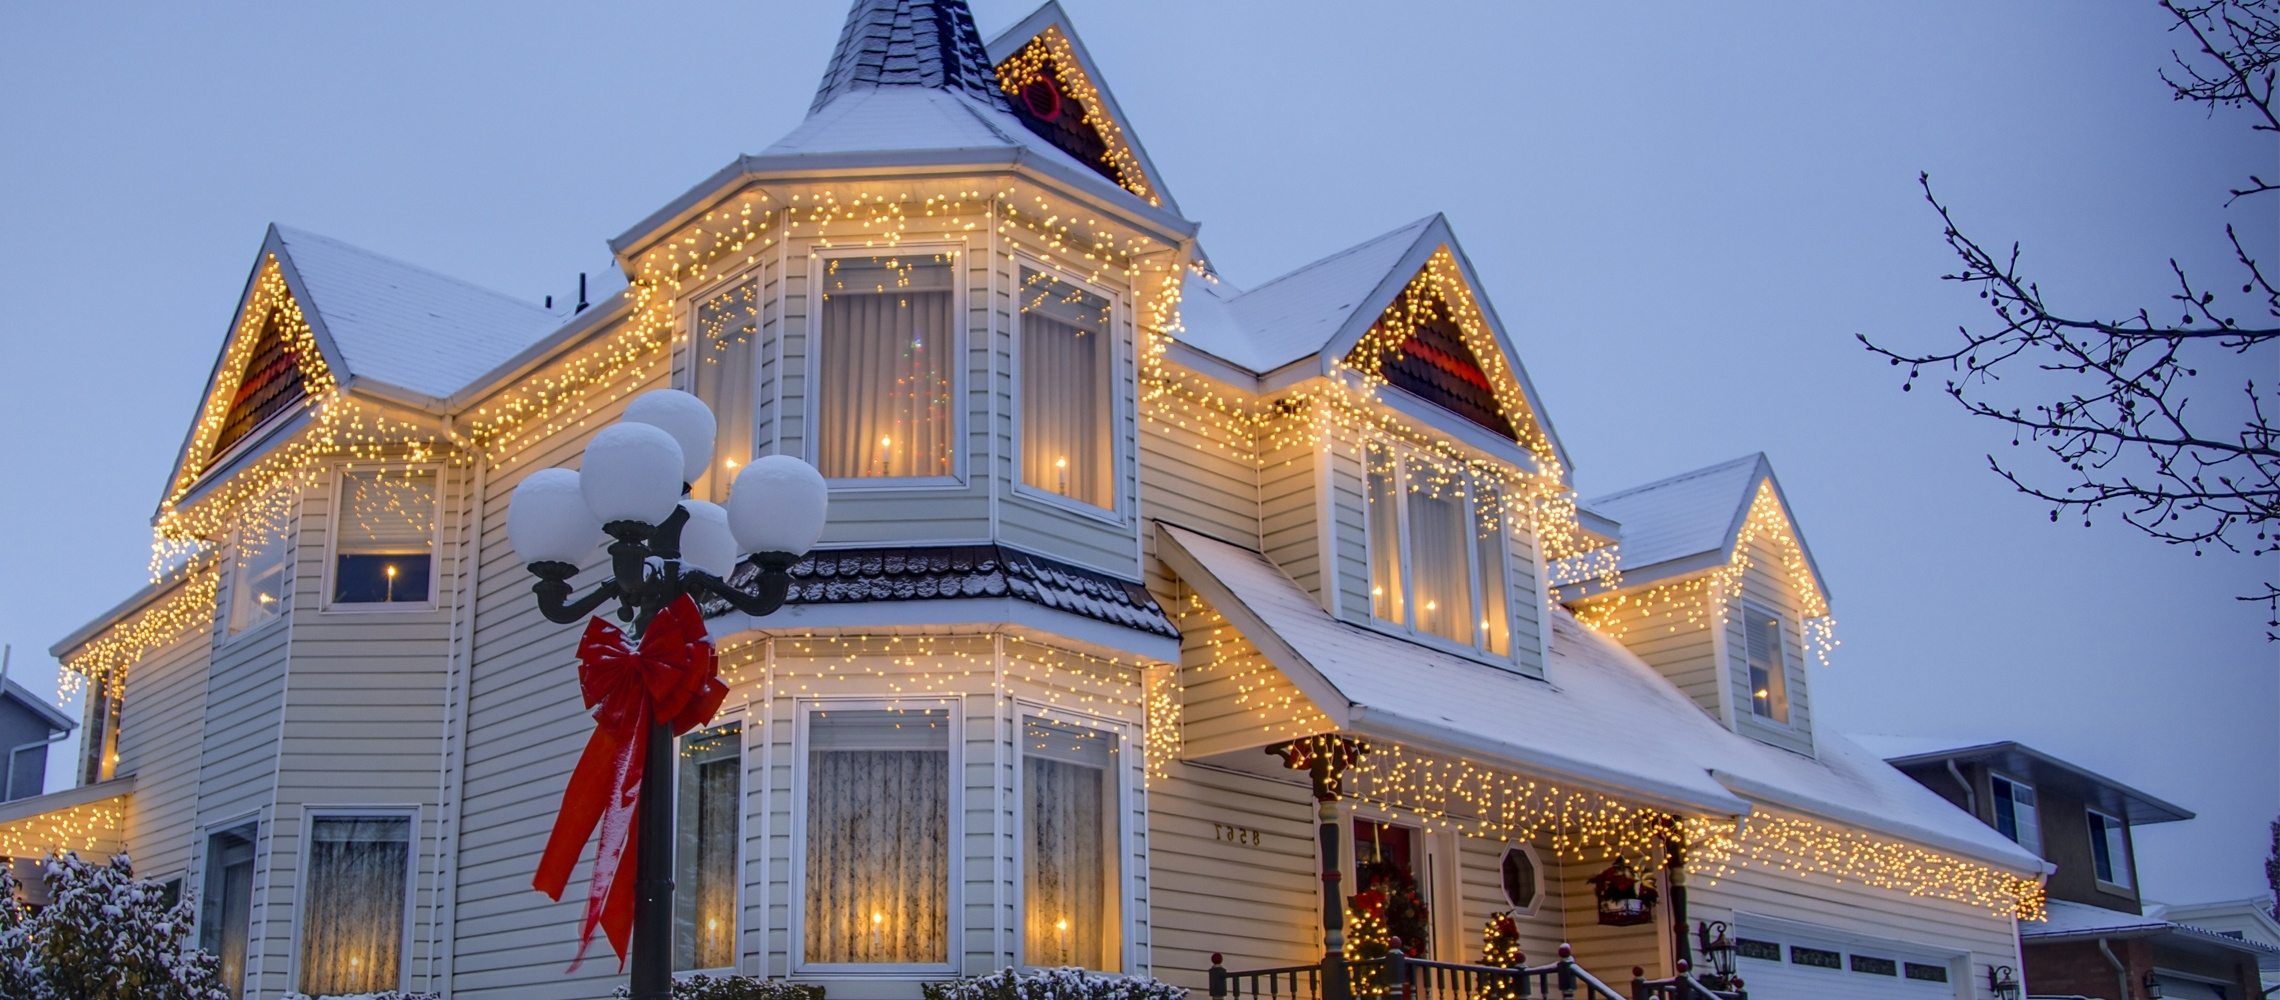 Christmas Lights Ideas For The Roof With Newest Outdoor Hanging Lights For Christmas (View 7 of 20)